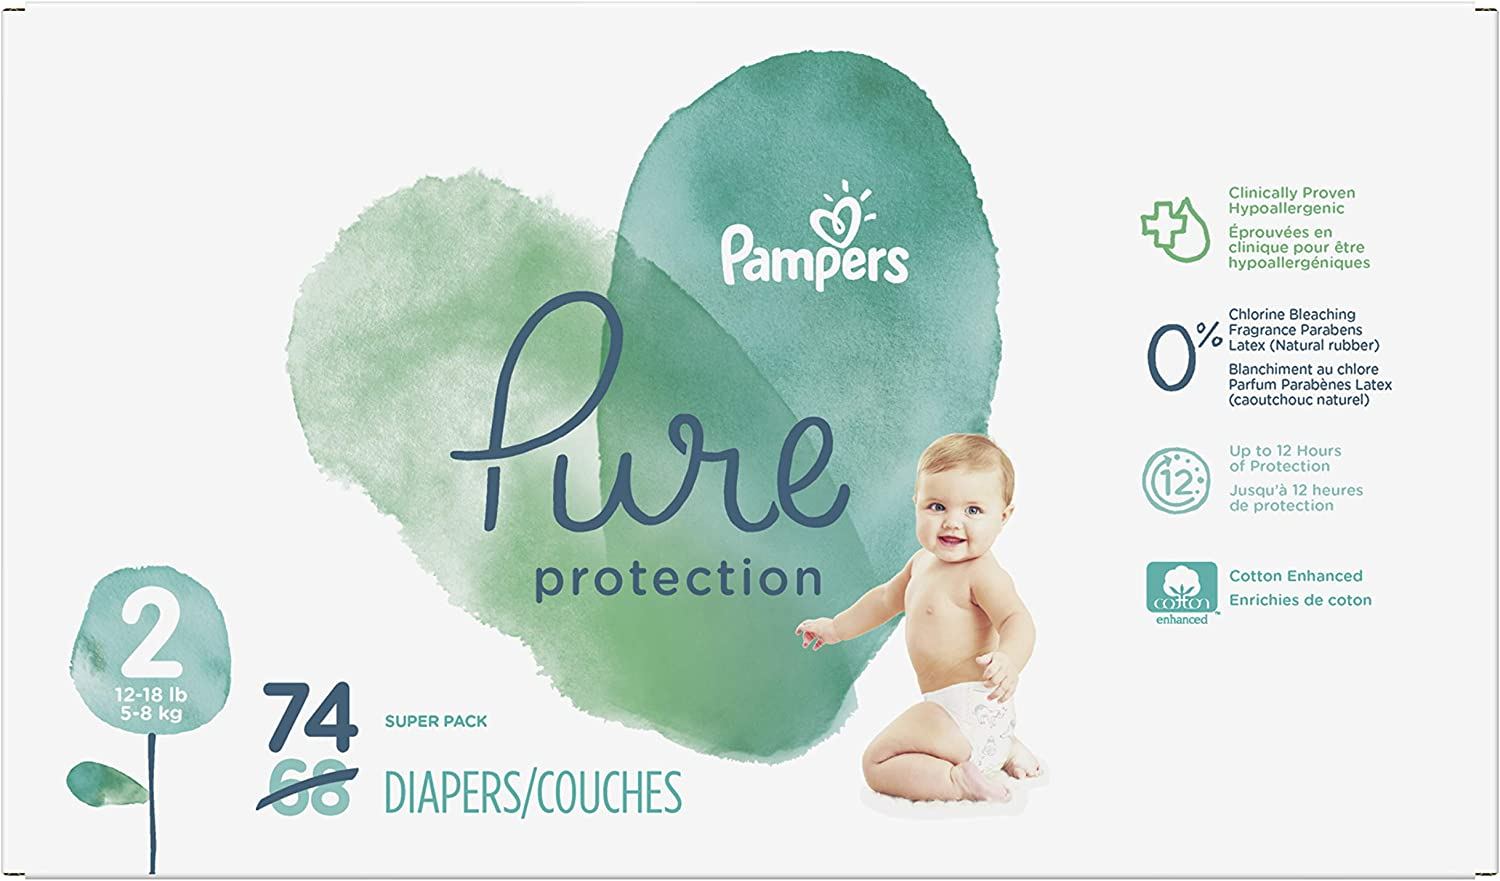 Diapers Size 2, 74 Count - Pampers Pure Protection Disposable Baby Diapers, Hypoallergenic and Unscented Protection, Super Pack